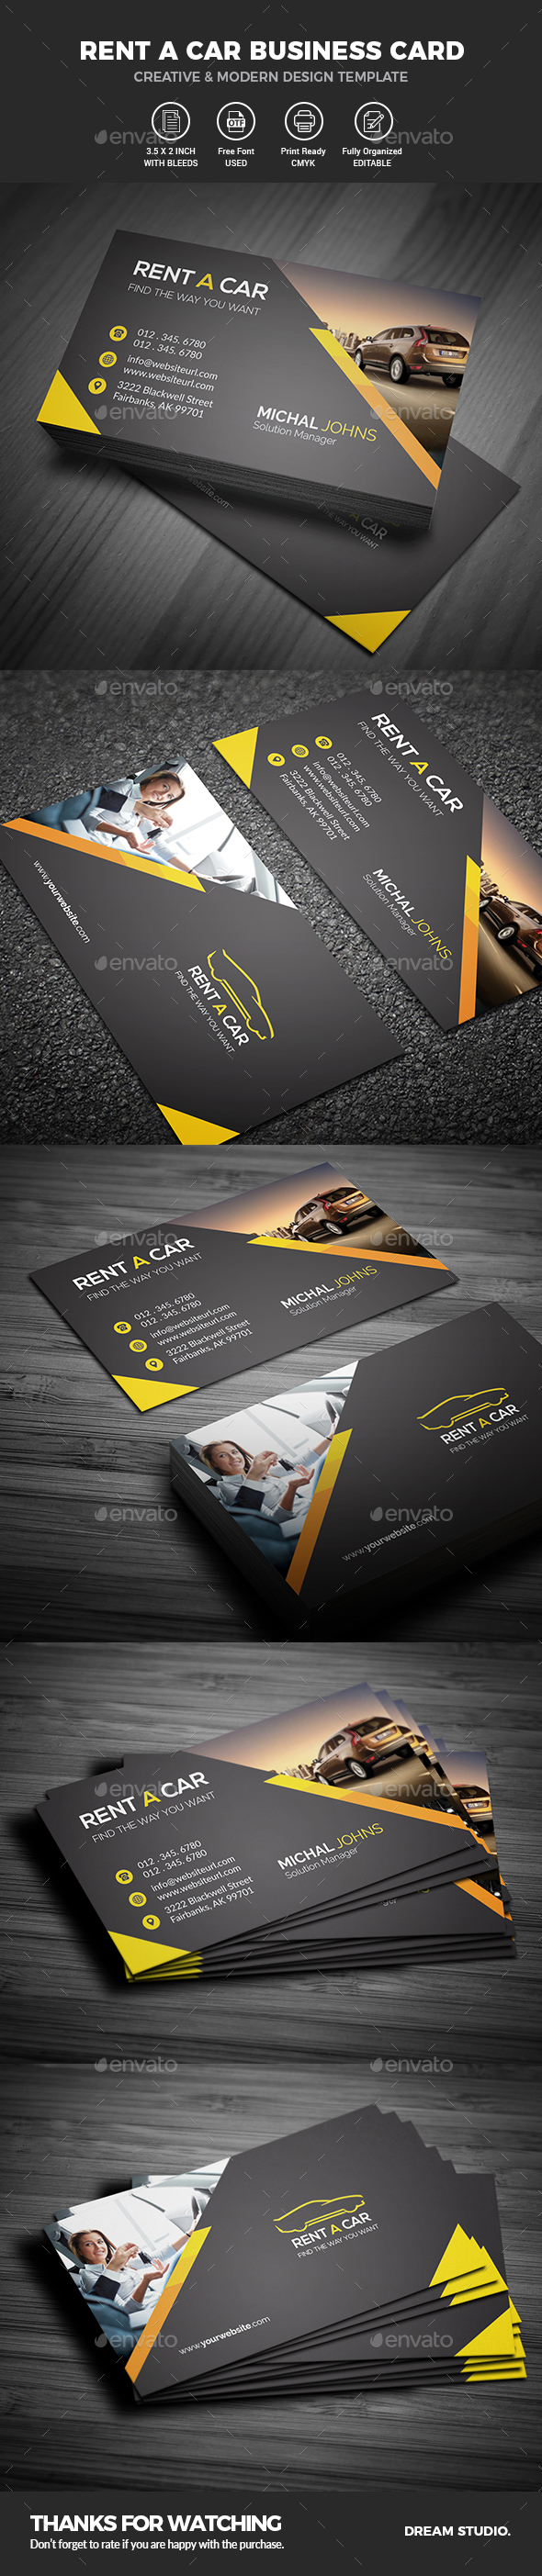 Charming 1 Inch Hexagon Template Big 1 Page Resumes Examples Square 1.25 Button Template 10 Best Resumes Young 10 Tips To Making A Resume Brown100 Dollar Bill Template Business Card Templates \u0026 Designs From GraphicRiver